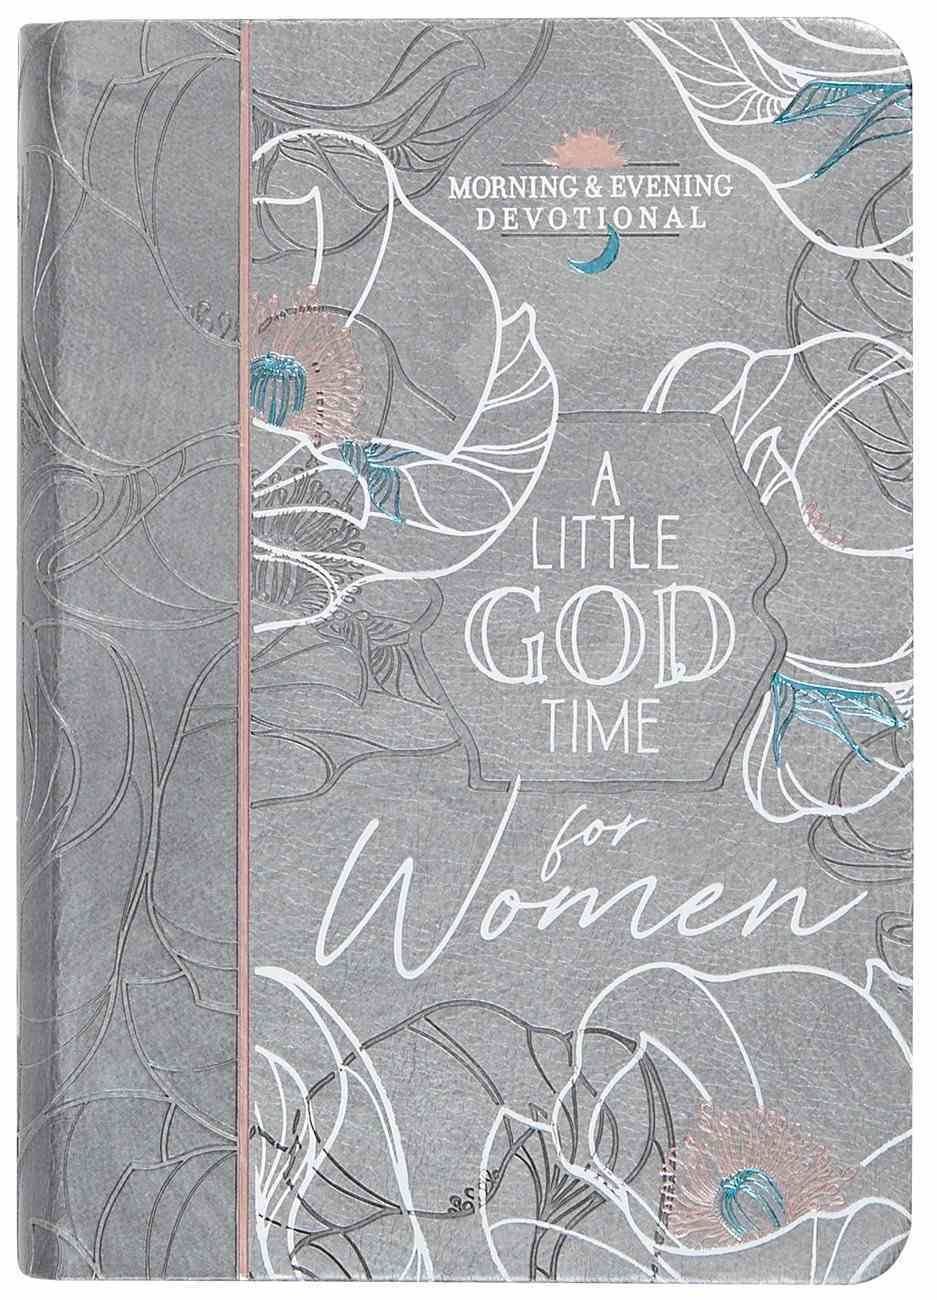 A Little God Time For Women (Morning & Evening) Imitation Leather